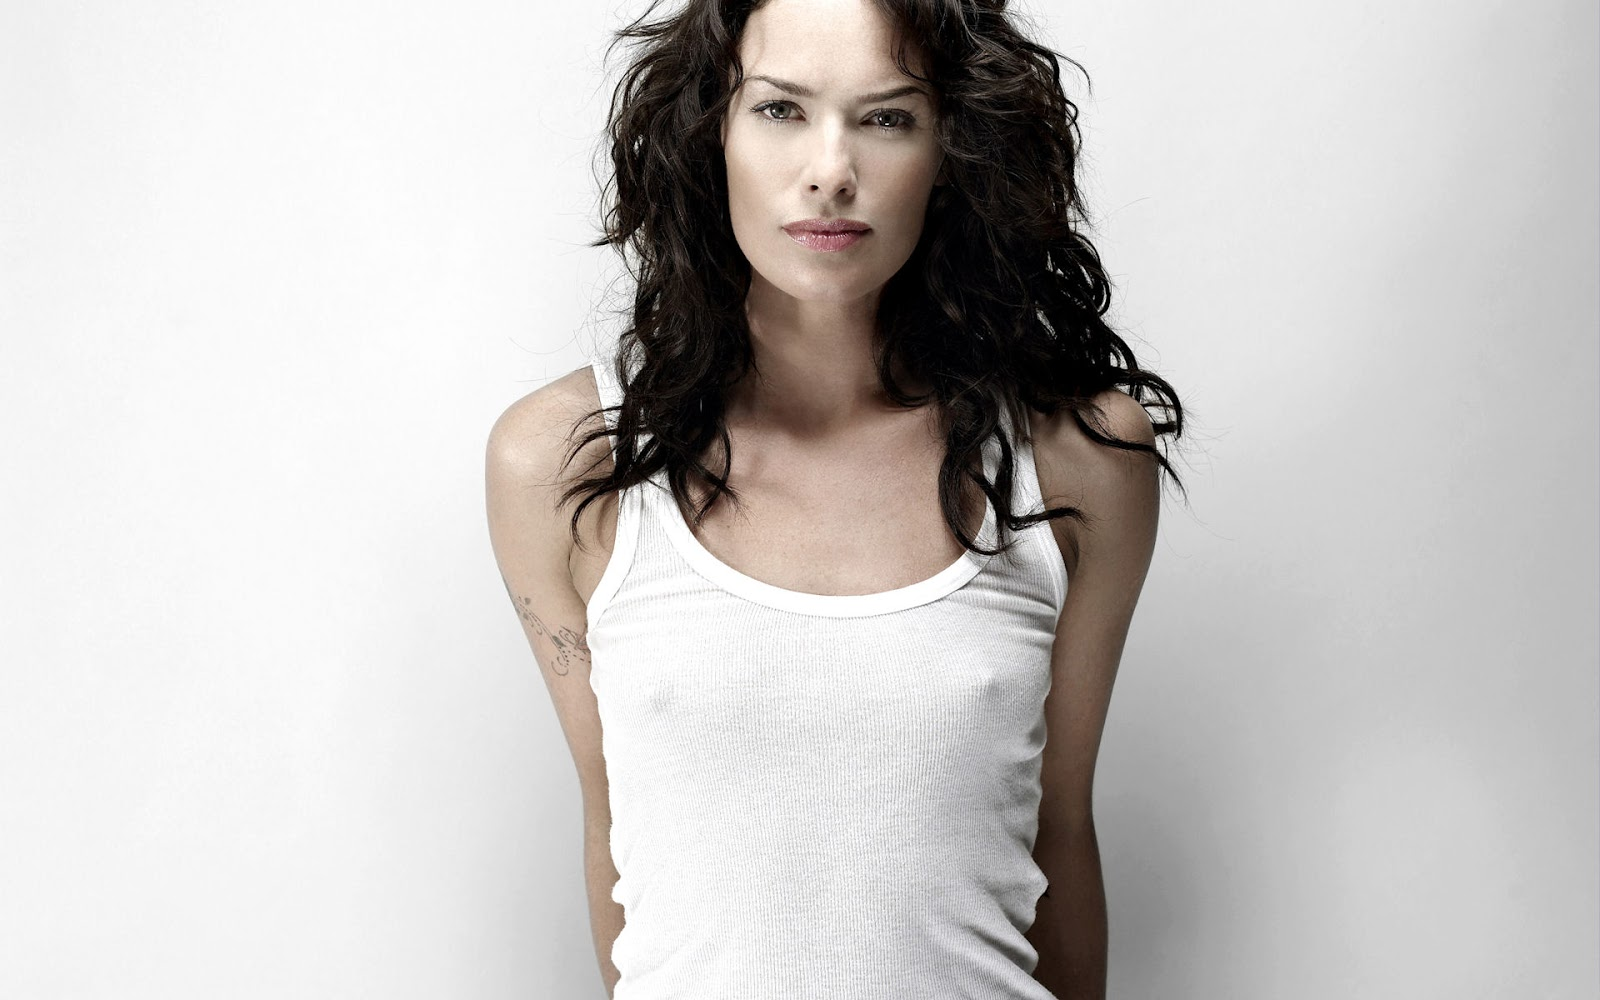 Hot Lena Headey nude (53 foto and video), Topless, Hot, Twitter, swimsuit 2017